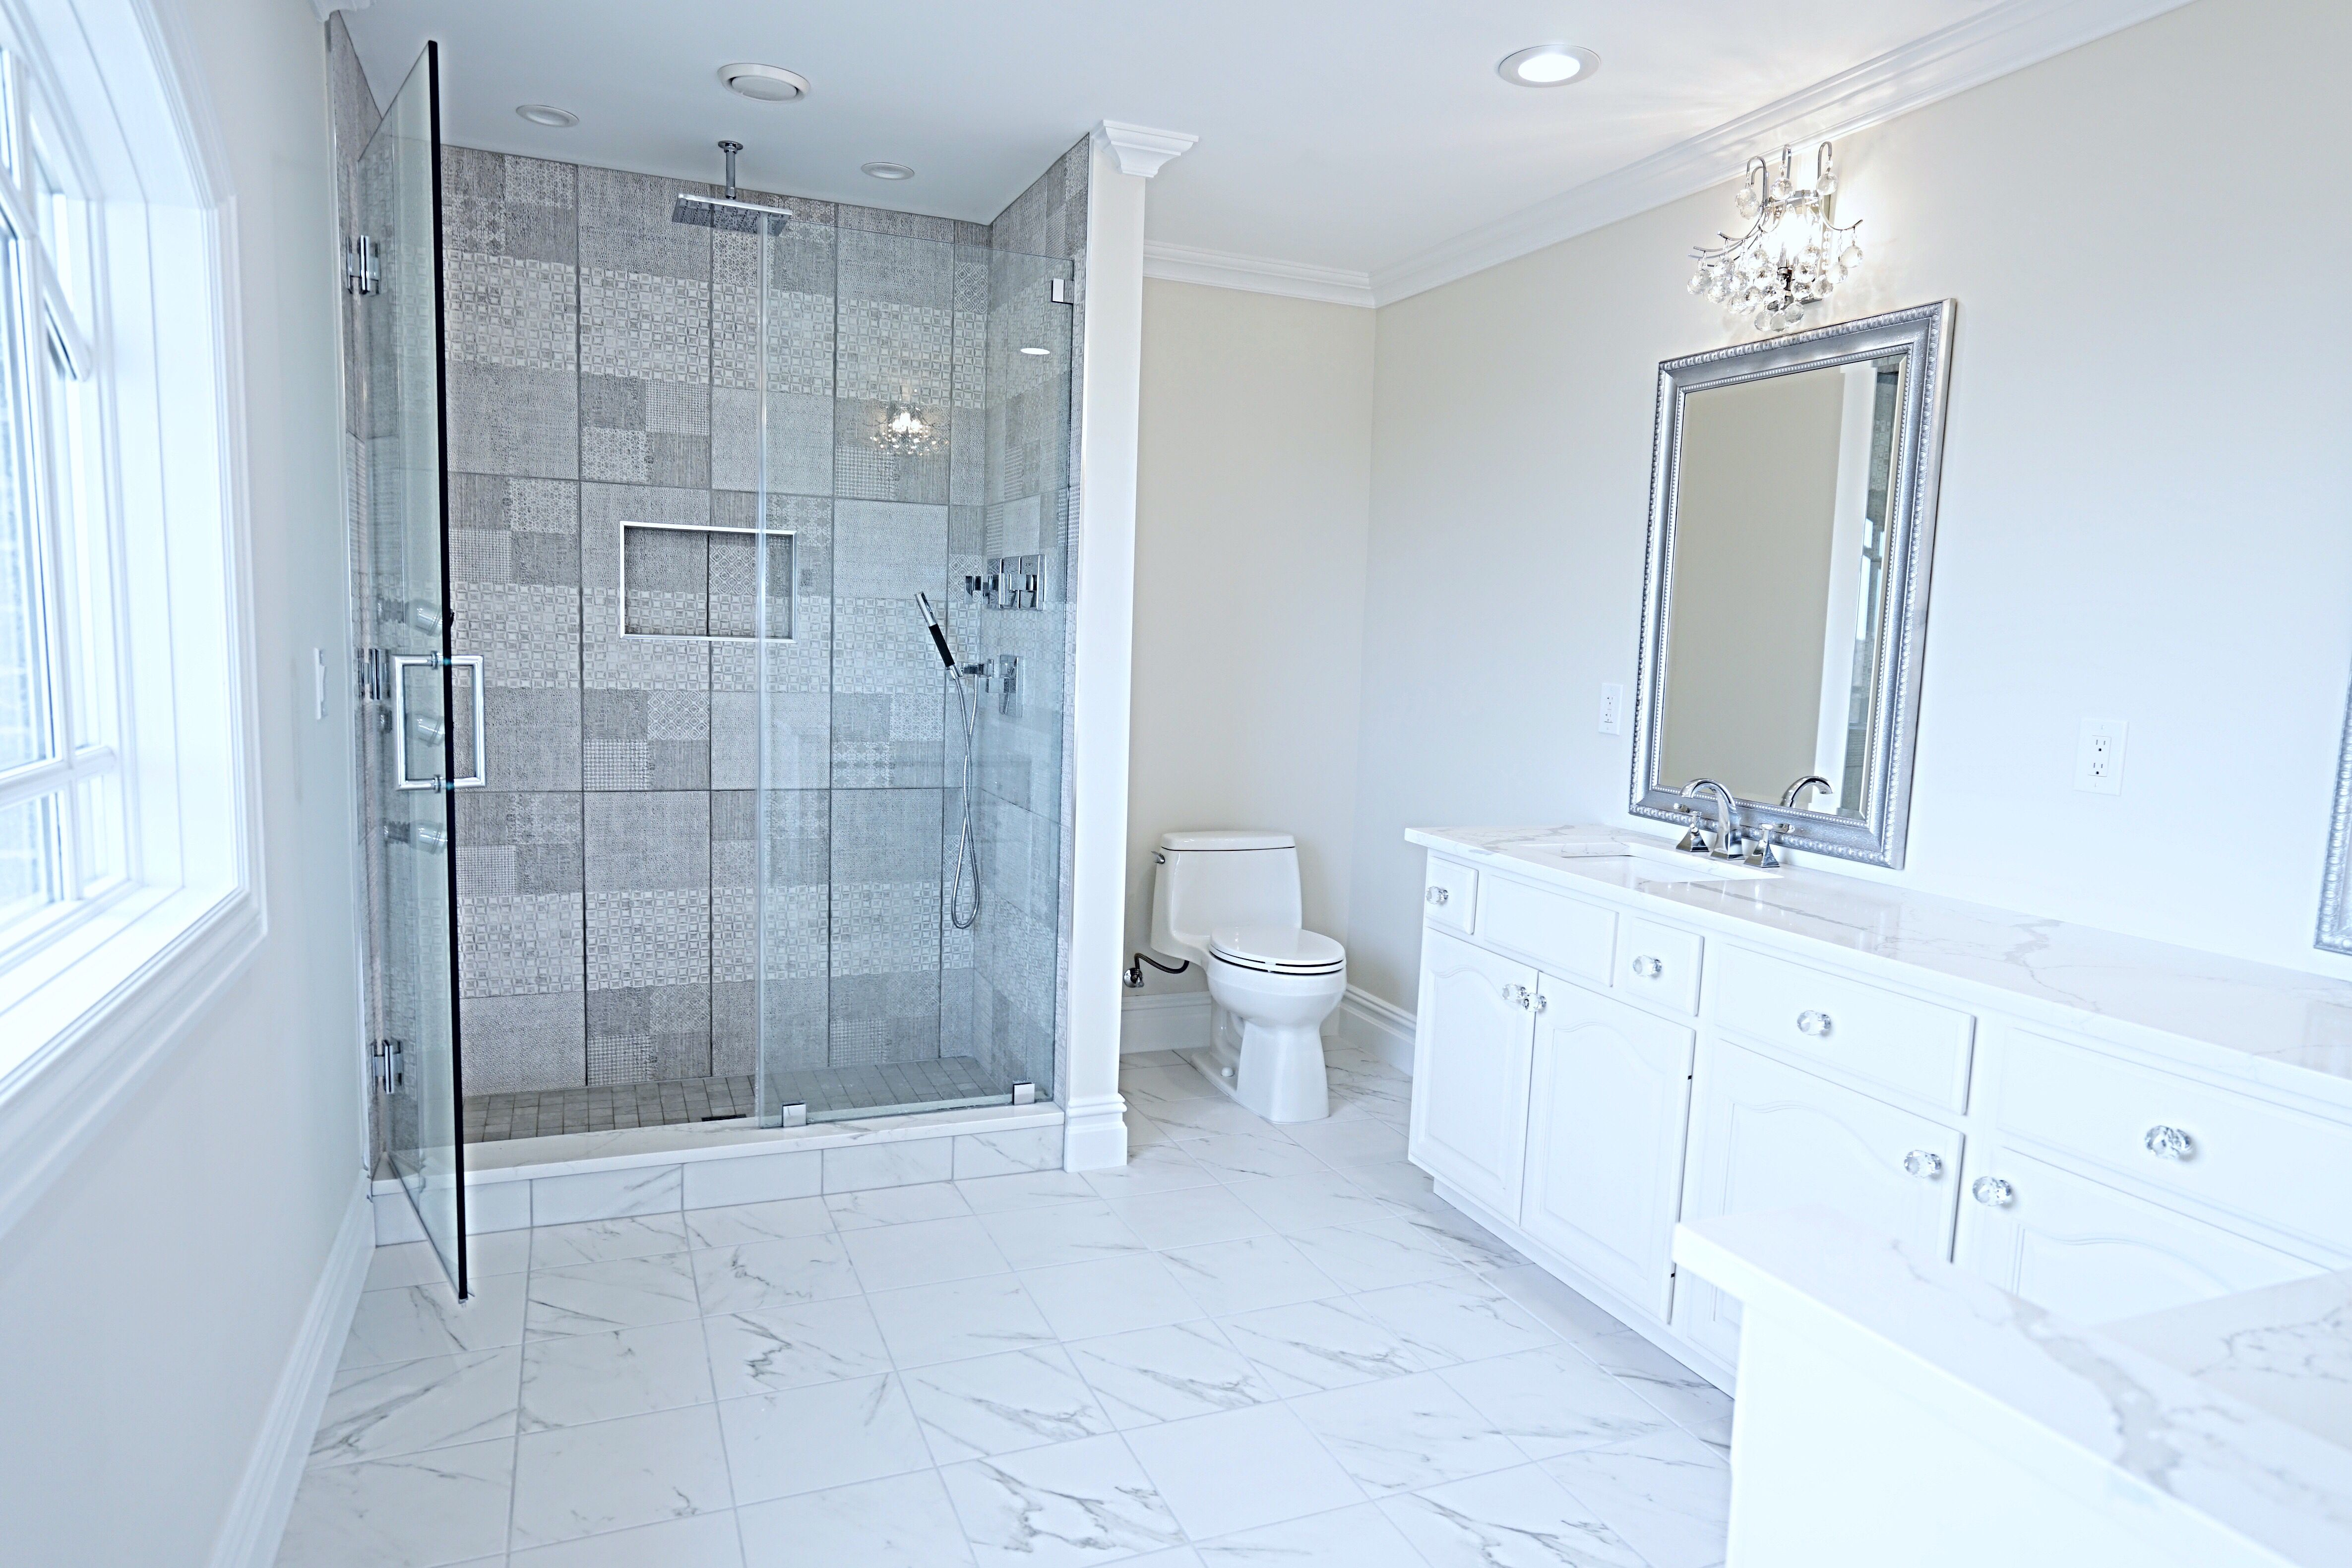 This Might Be Easy If You Have Previous Home Enhancement Experience If You Do Not Have Any Hous In 2020 Bathroom Floor Tiles Bathrooms Remodel Small Bathroom Makeover